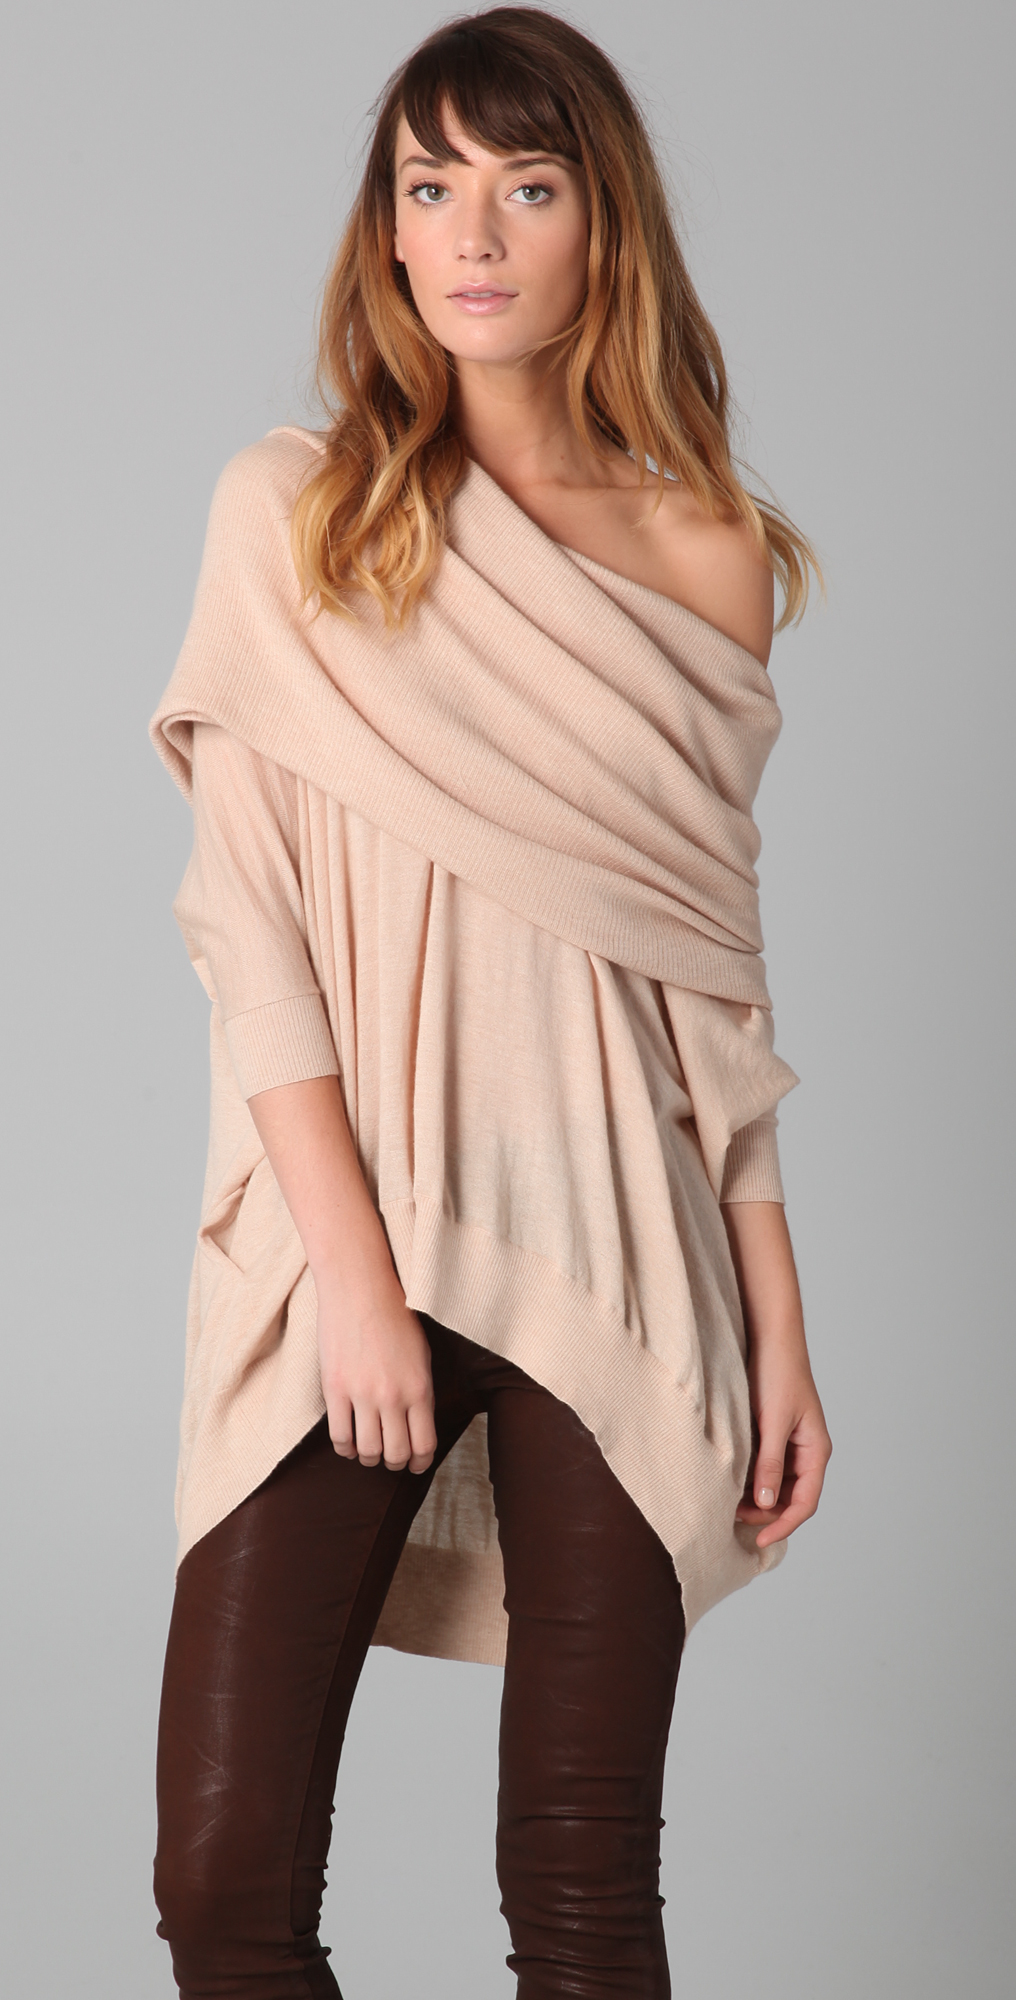 Bop Basics Oversized Cashmere Cowl Neck Sweater | SHOPBOP